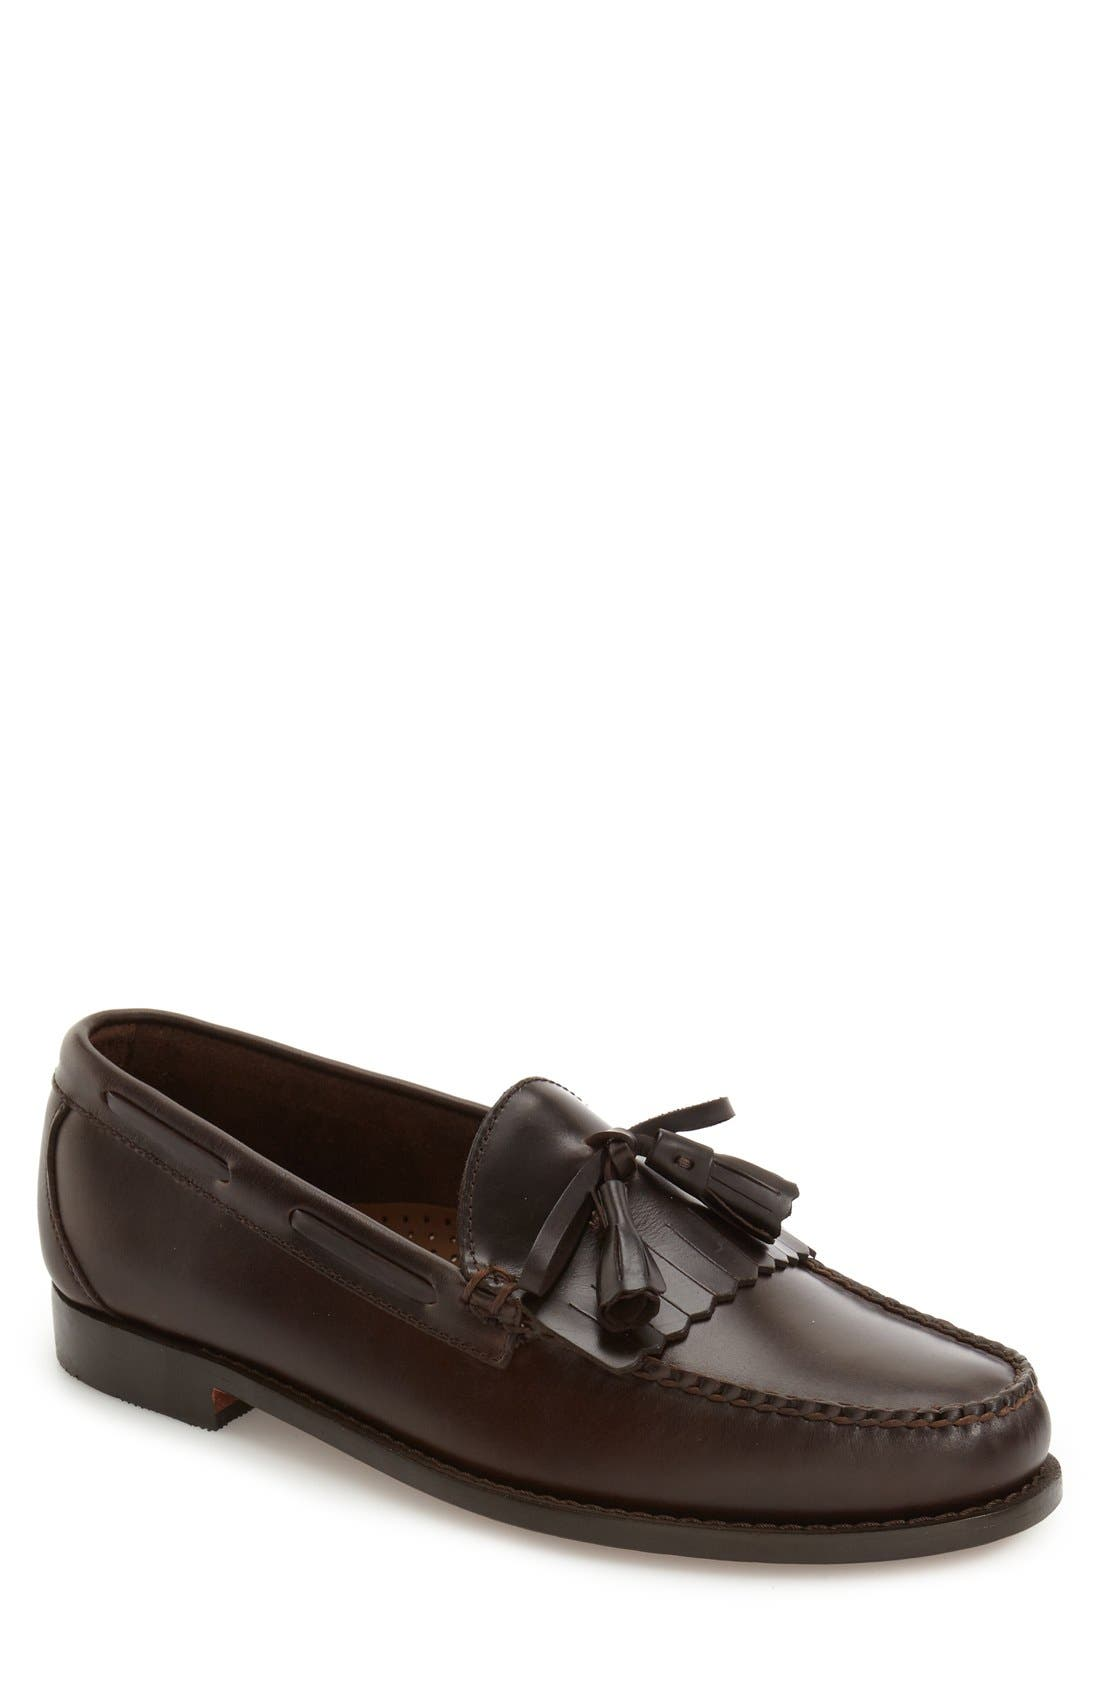 'Lawrence' Tassel Loafer,                             Main thumbnail 2, color,